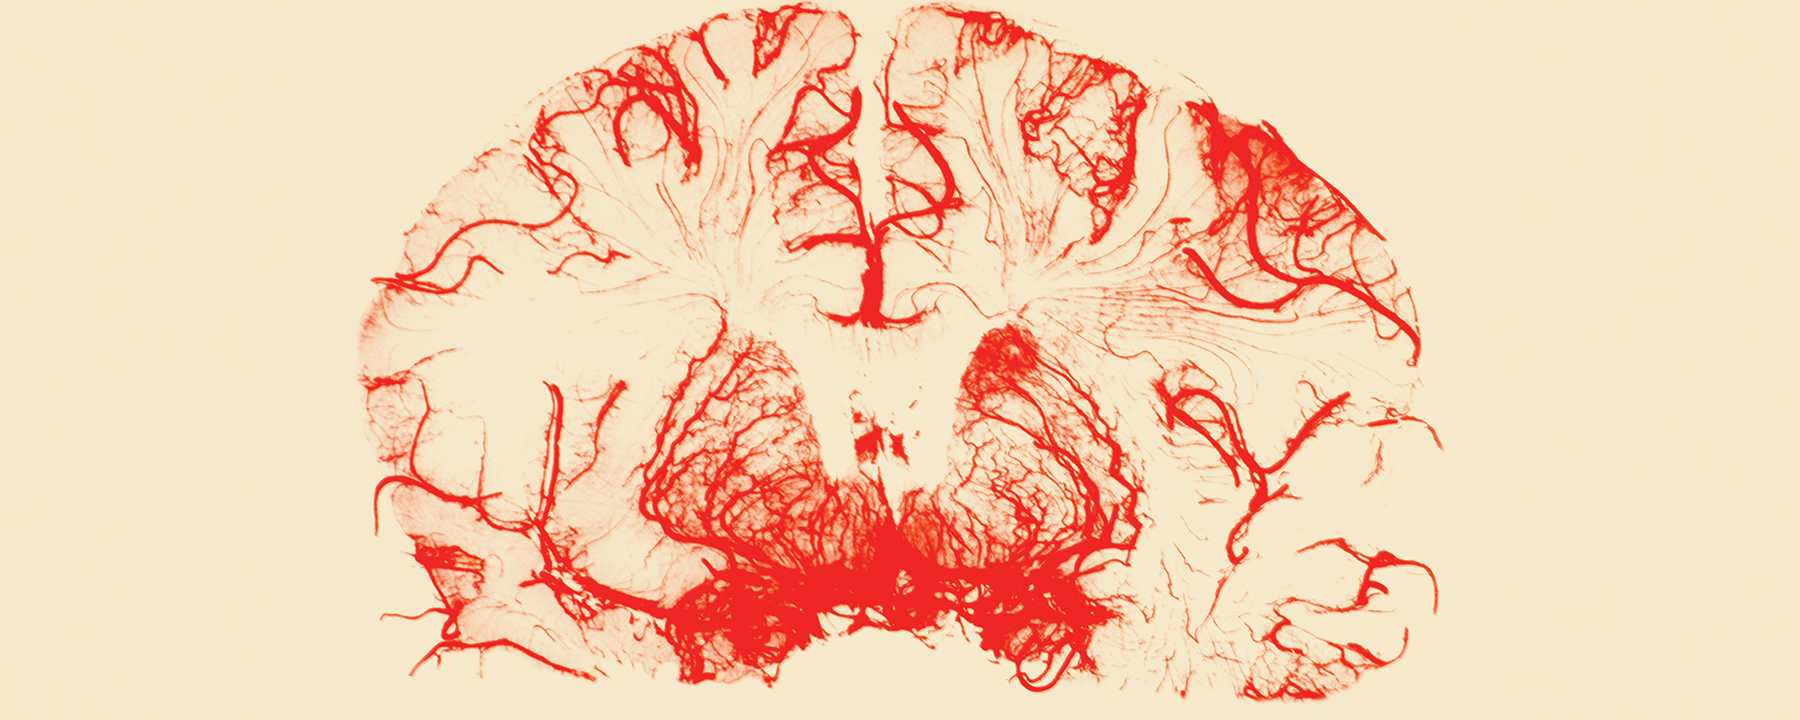 The Hunt for a Blood Test for Alzheimer's Disease